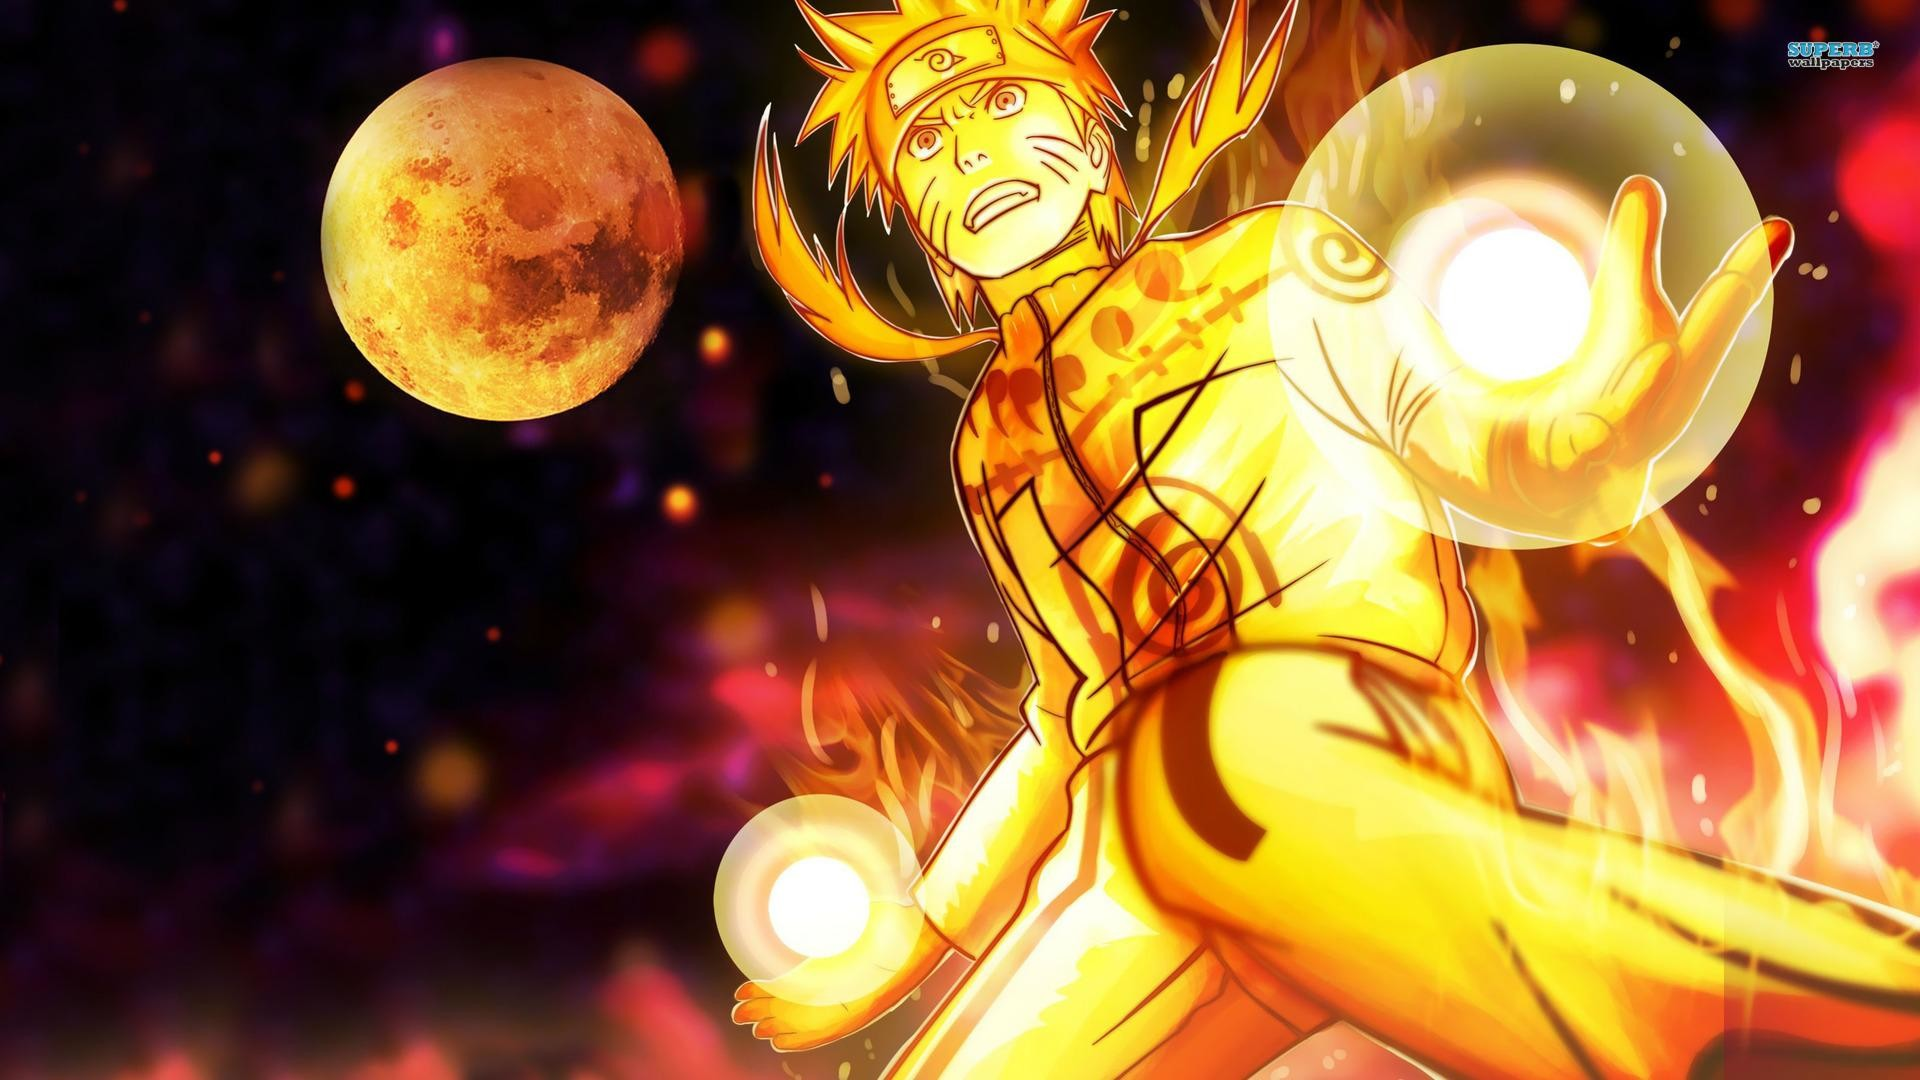 Naruto Shippuden Wallpapers Hd 75 Background Pictures